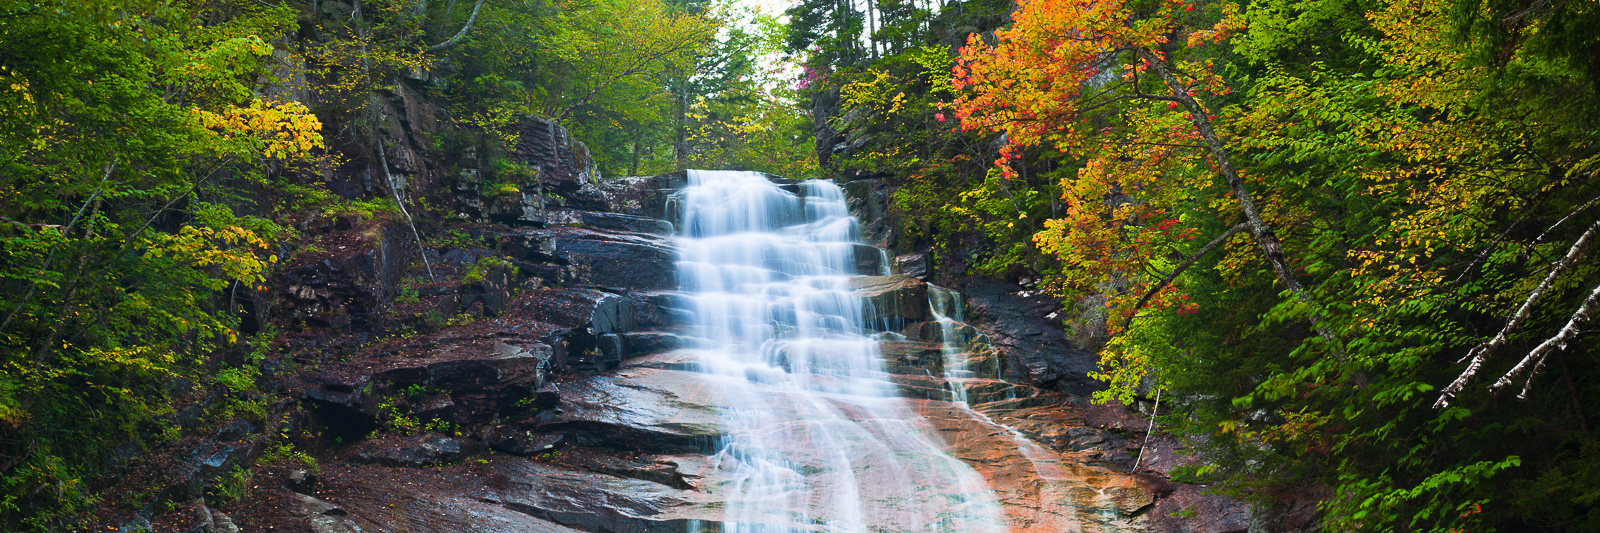 When the color changes at Ripley Falls I know autumn has begun. By Mid September the cool mornings of the White Mountains start...